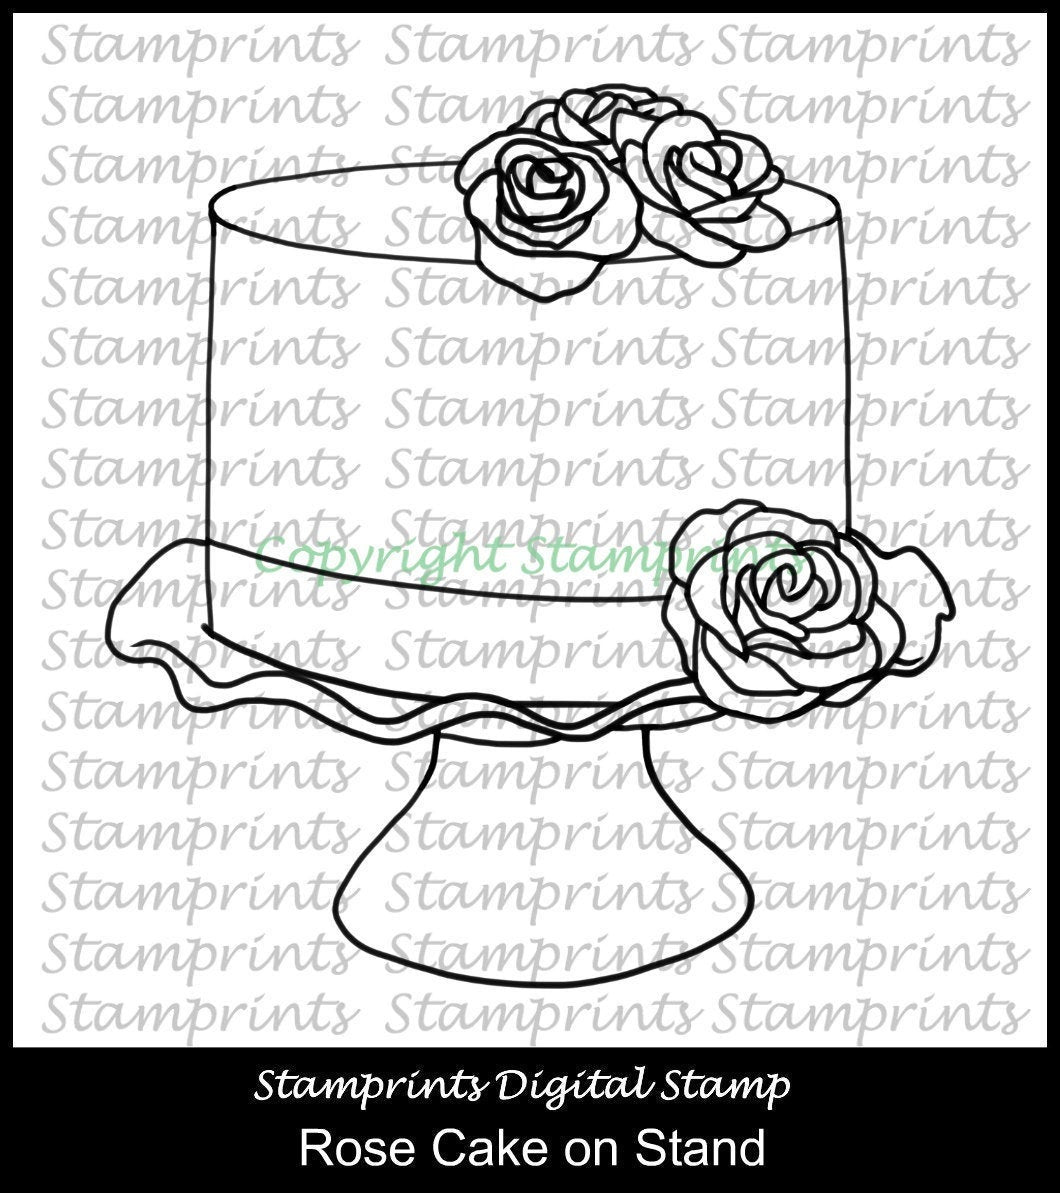 Rose Cake on Stand  (TLS-1946) Stamprints Digital Stamp. Cardmaking.Scrapbooking.MixedMedia.